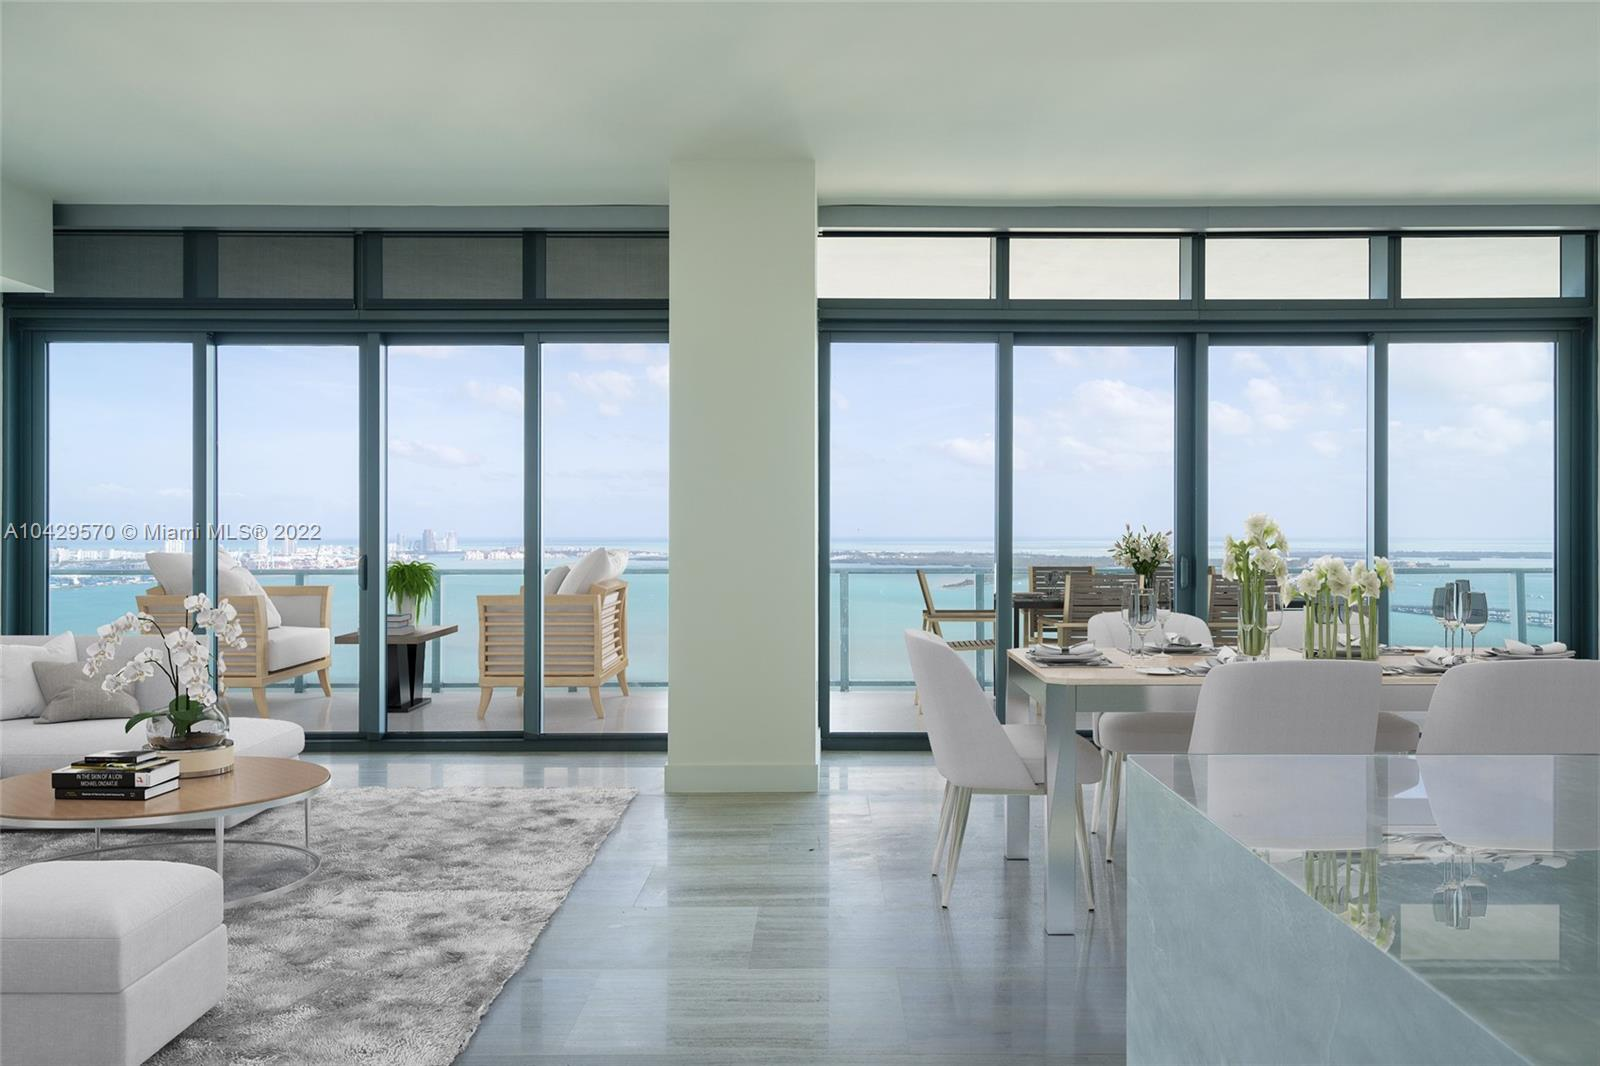 Situated on the desirable 02 line of Echo, Brickell's newest standard of sophisticated living, this pristine residence will captivate you with its unobstructed, sweeping water and skyline views and oversized terrace with summer kitchen. Top-of-the-line SubZero and Wolf appliances and modern finishes such as Calacatta Luxor marble floors throughout, 12' ceilings, Apple iHome smart home technology. A generous split floor plan provides plenty of natural light, each bedroom has balcony access and water views, bathrooms are outfitted with Dornbracht and Grohe fixtures. With no luxury compromised, Echo residents can enjoy amenities including a vanishing-edge pool deck, resort-style poolside service and a state-of-the-art fitness facility and spa, 24-hr concierge.